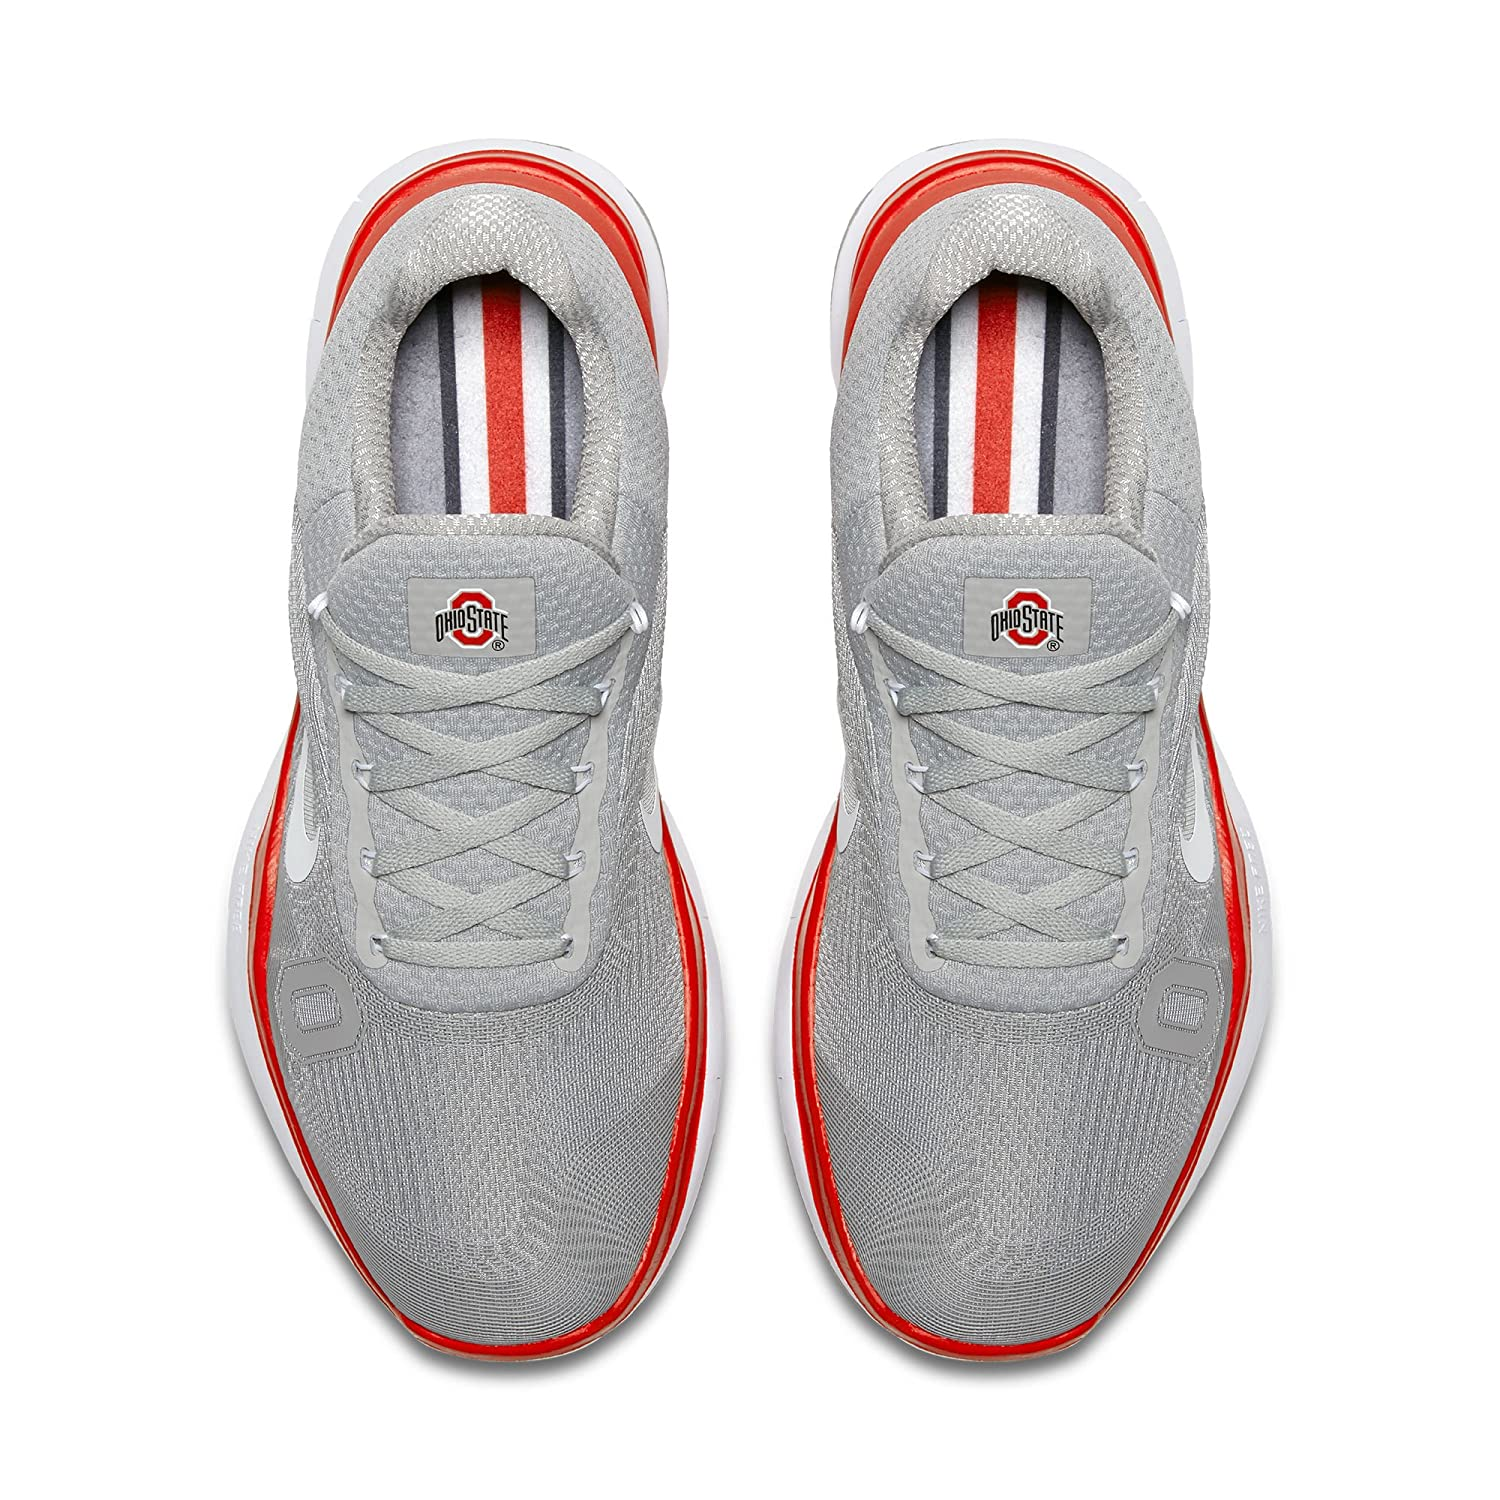 amazon nike ohio state buckeyes free trainer v7 sg collection college shoes  size mens 9.5 us